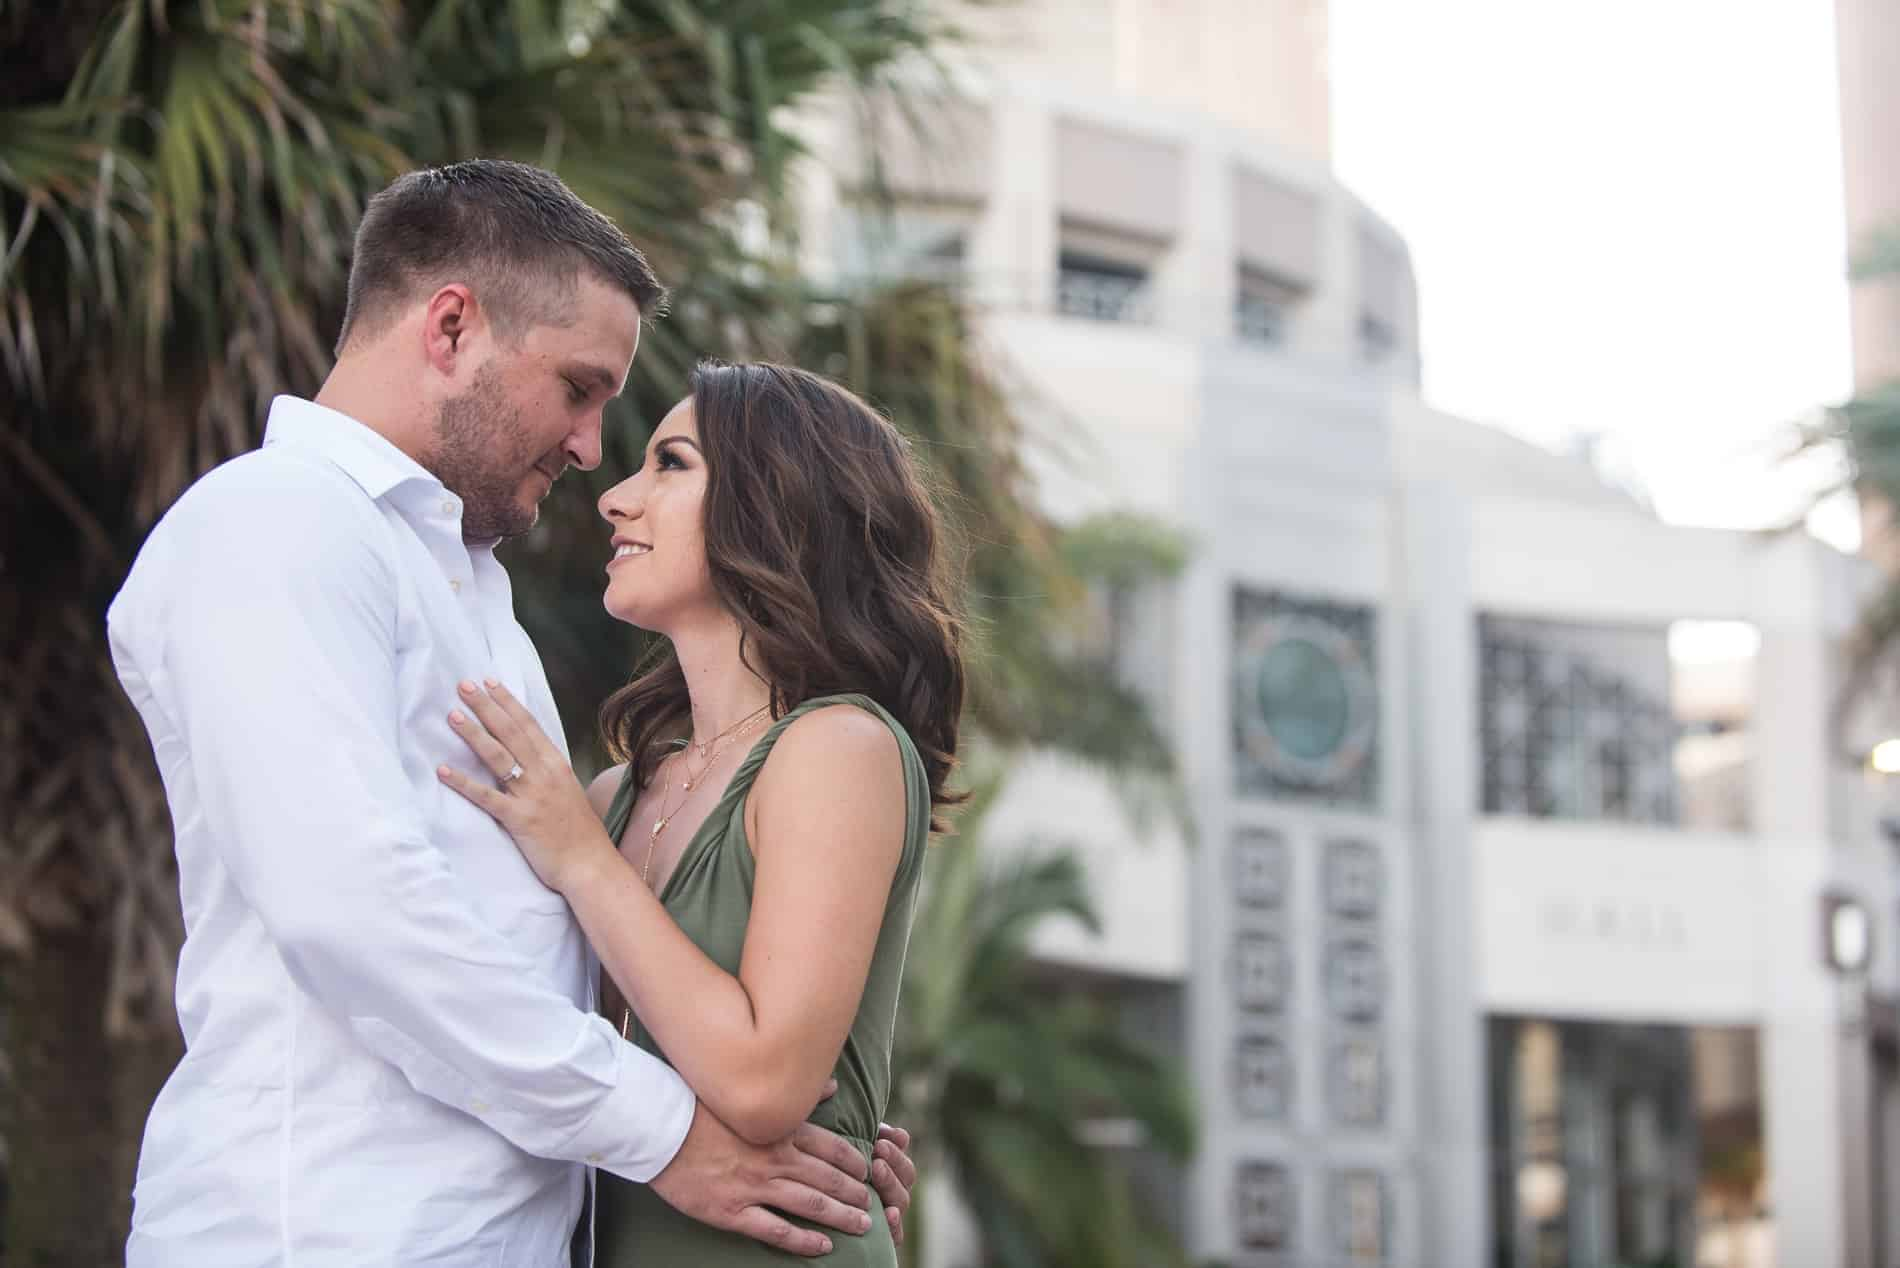 City Hall as a backdrop for Engagement Photos in Orlando